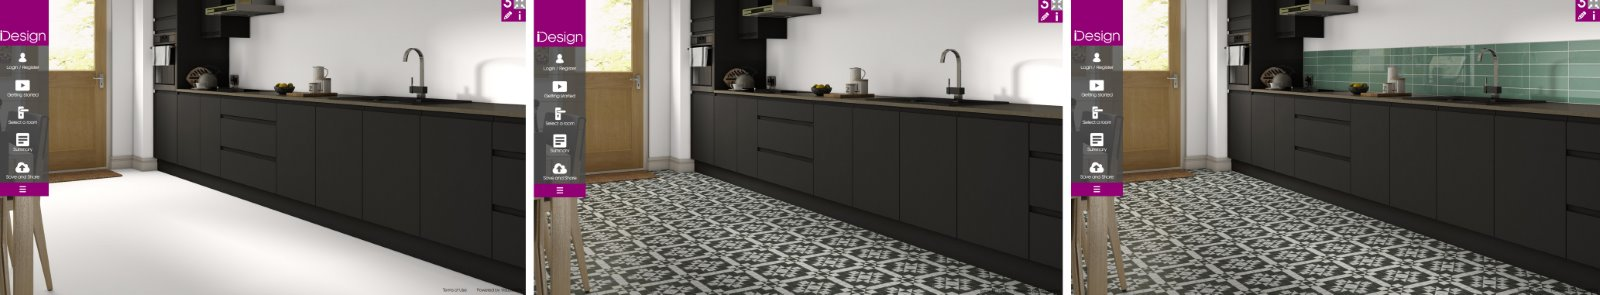 Black handless kitchen tiles